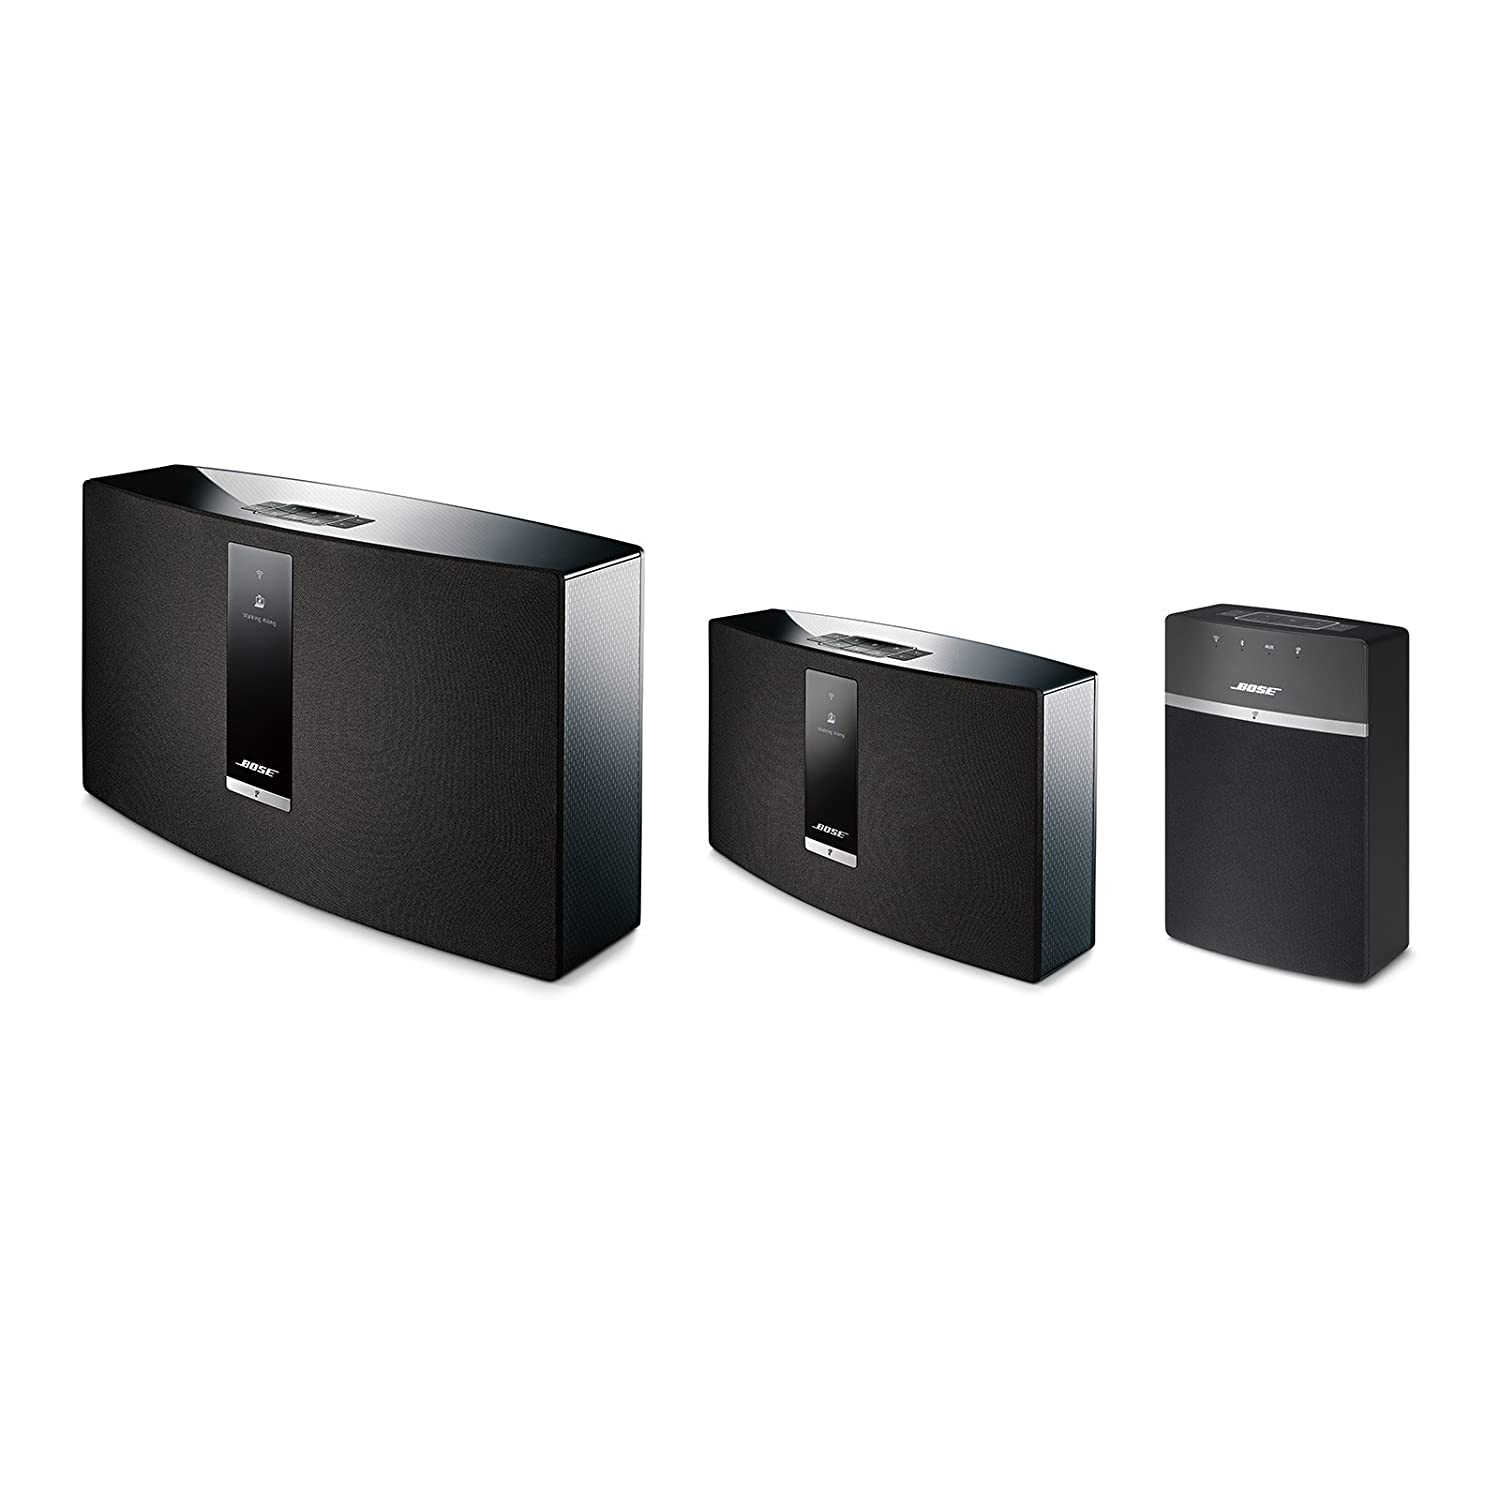 amazoncom bose soundtouch 20 series iii wireless speaker black home audio theater blackweb 20 powerful speaker system